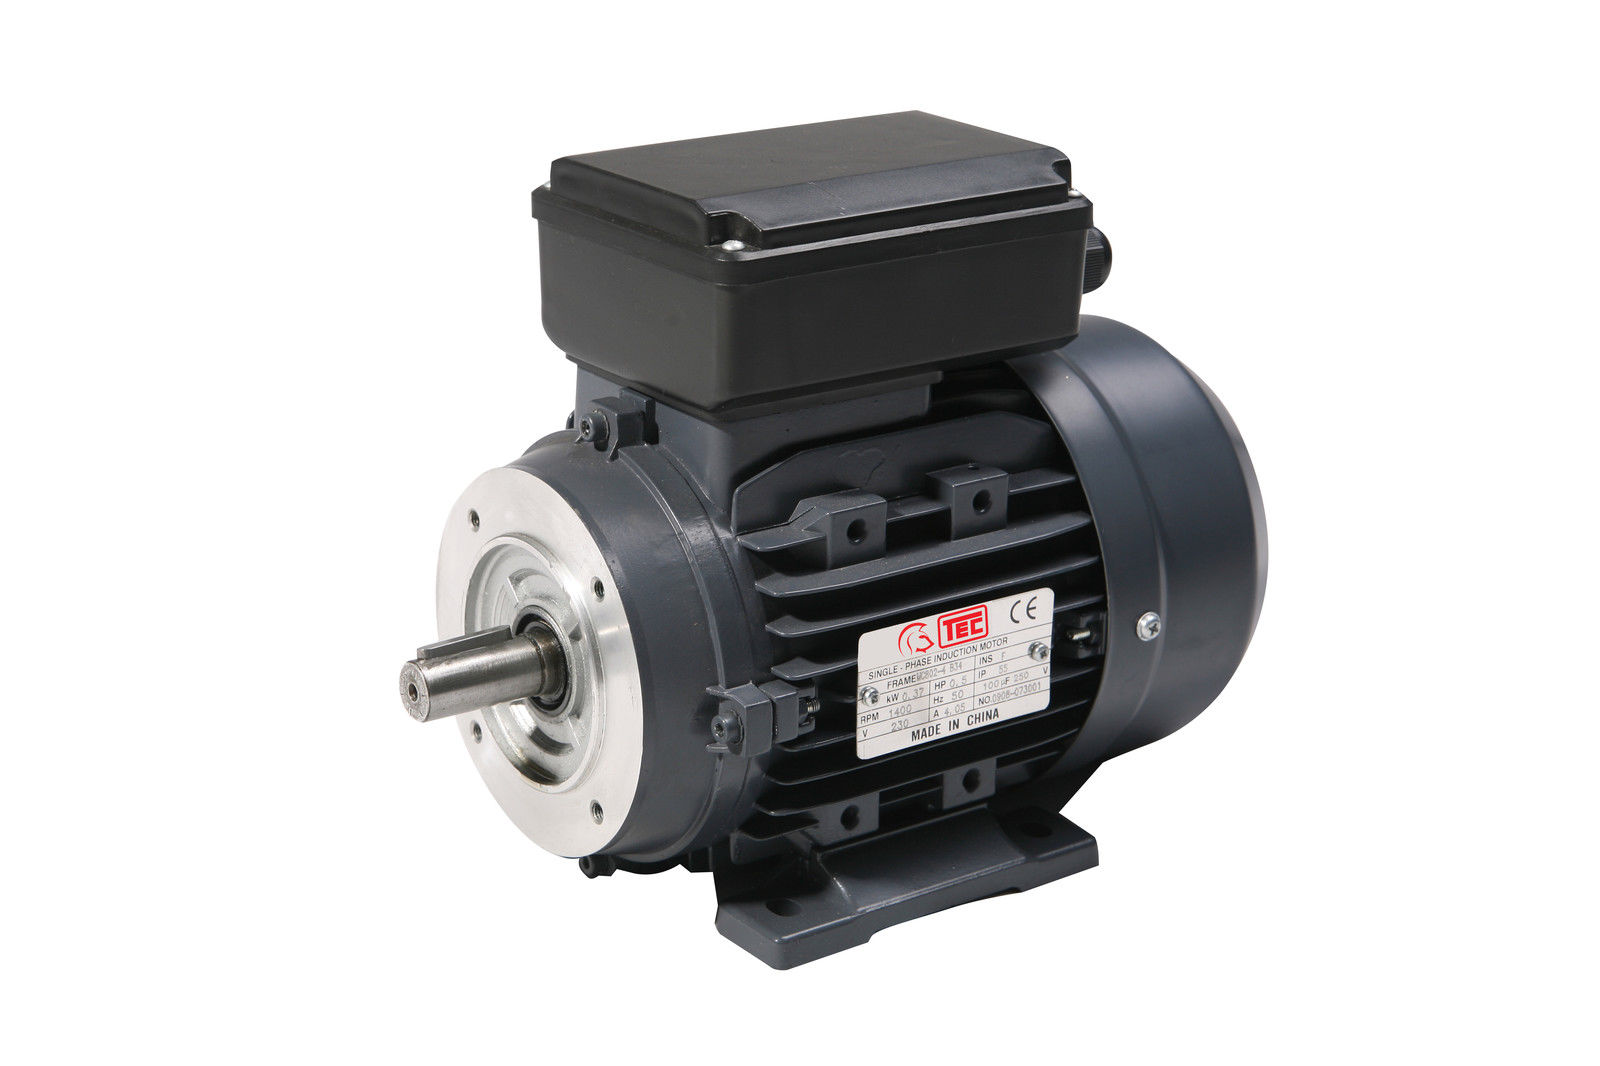 Kw 0 5 hp single phase electric motor 240v 1400 rpm 1 kw electric motor